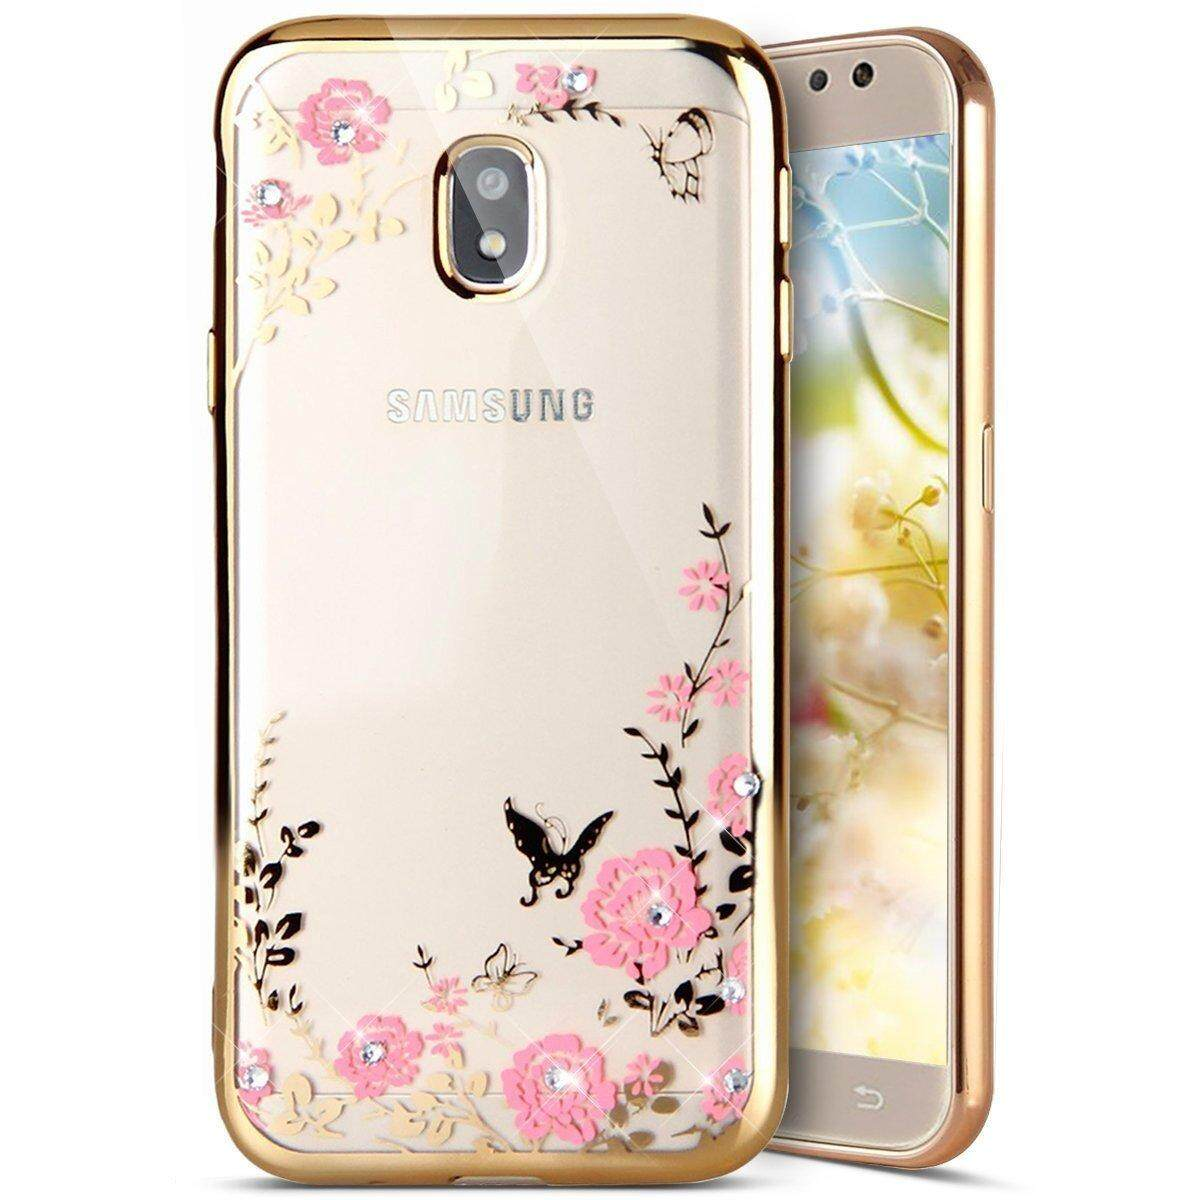 Features For Samsung Galaxy J4 2018 J400 Clear Soft Butterfly Floral